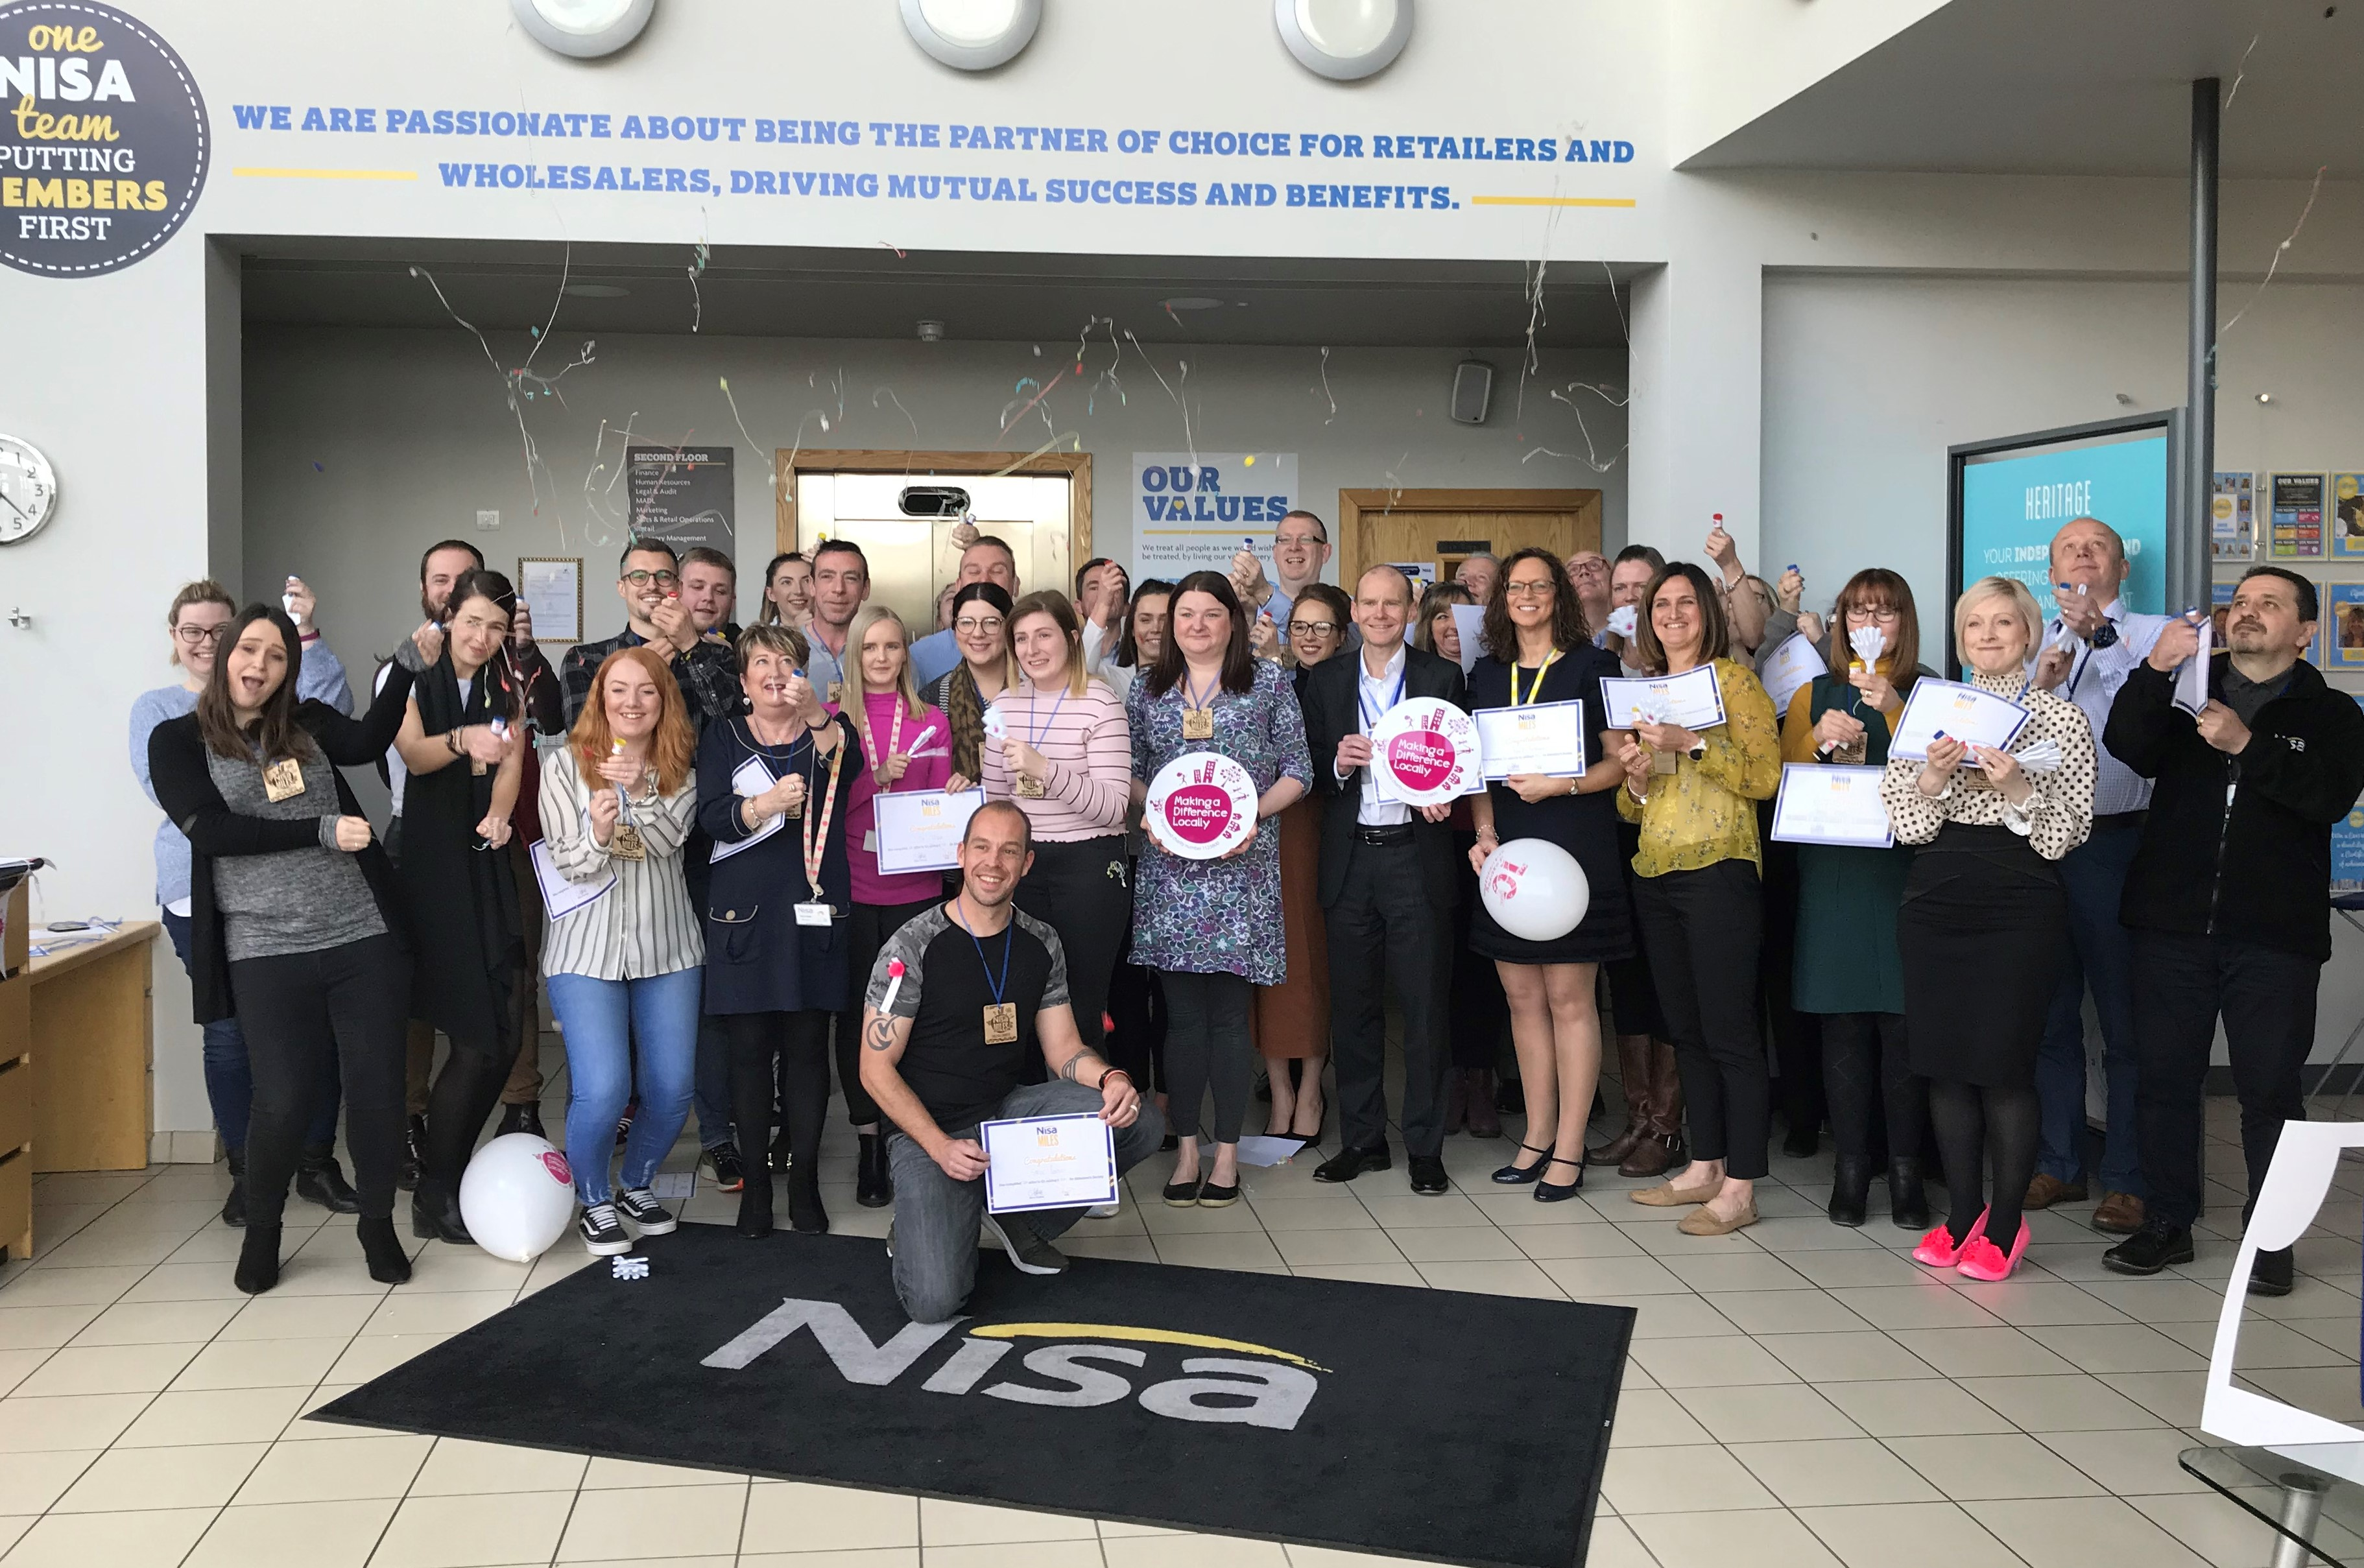 Nisa colleagues raise £15,000 for charity in workplace challenge